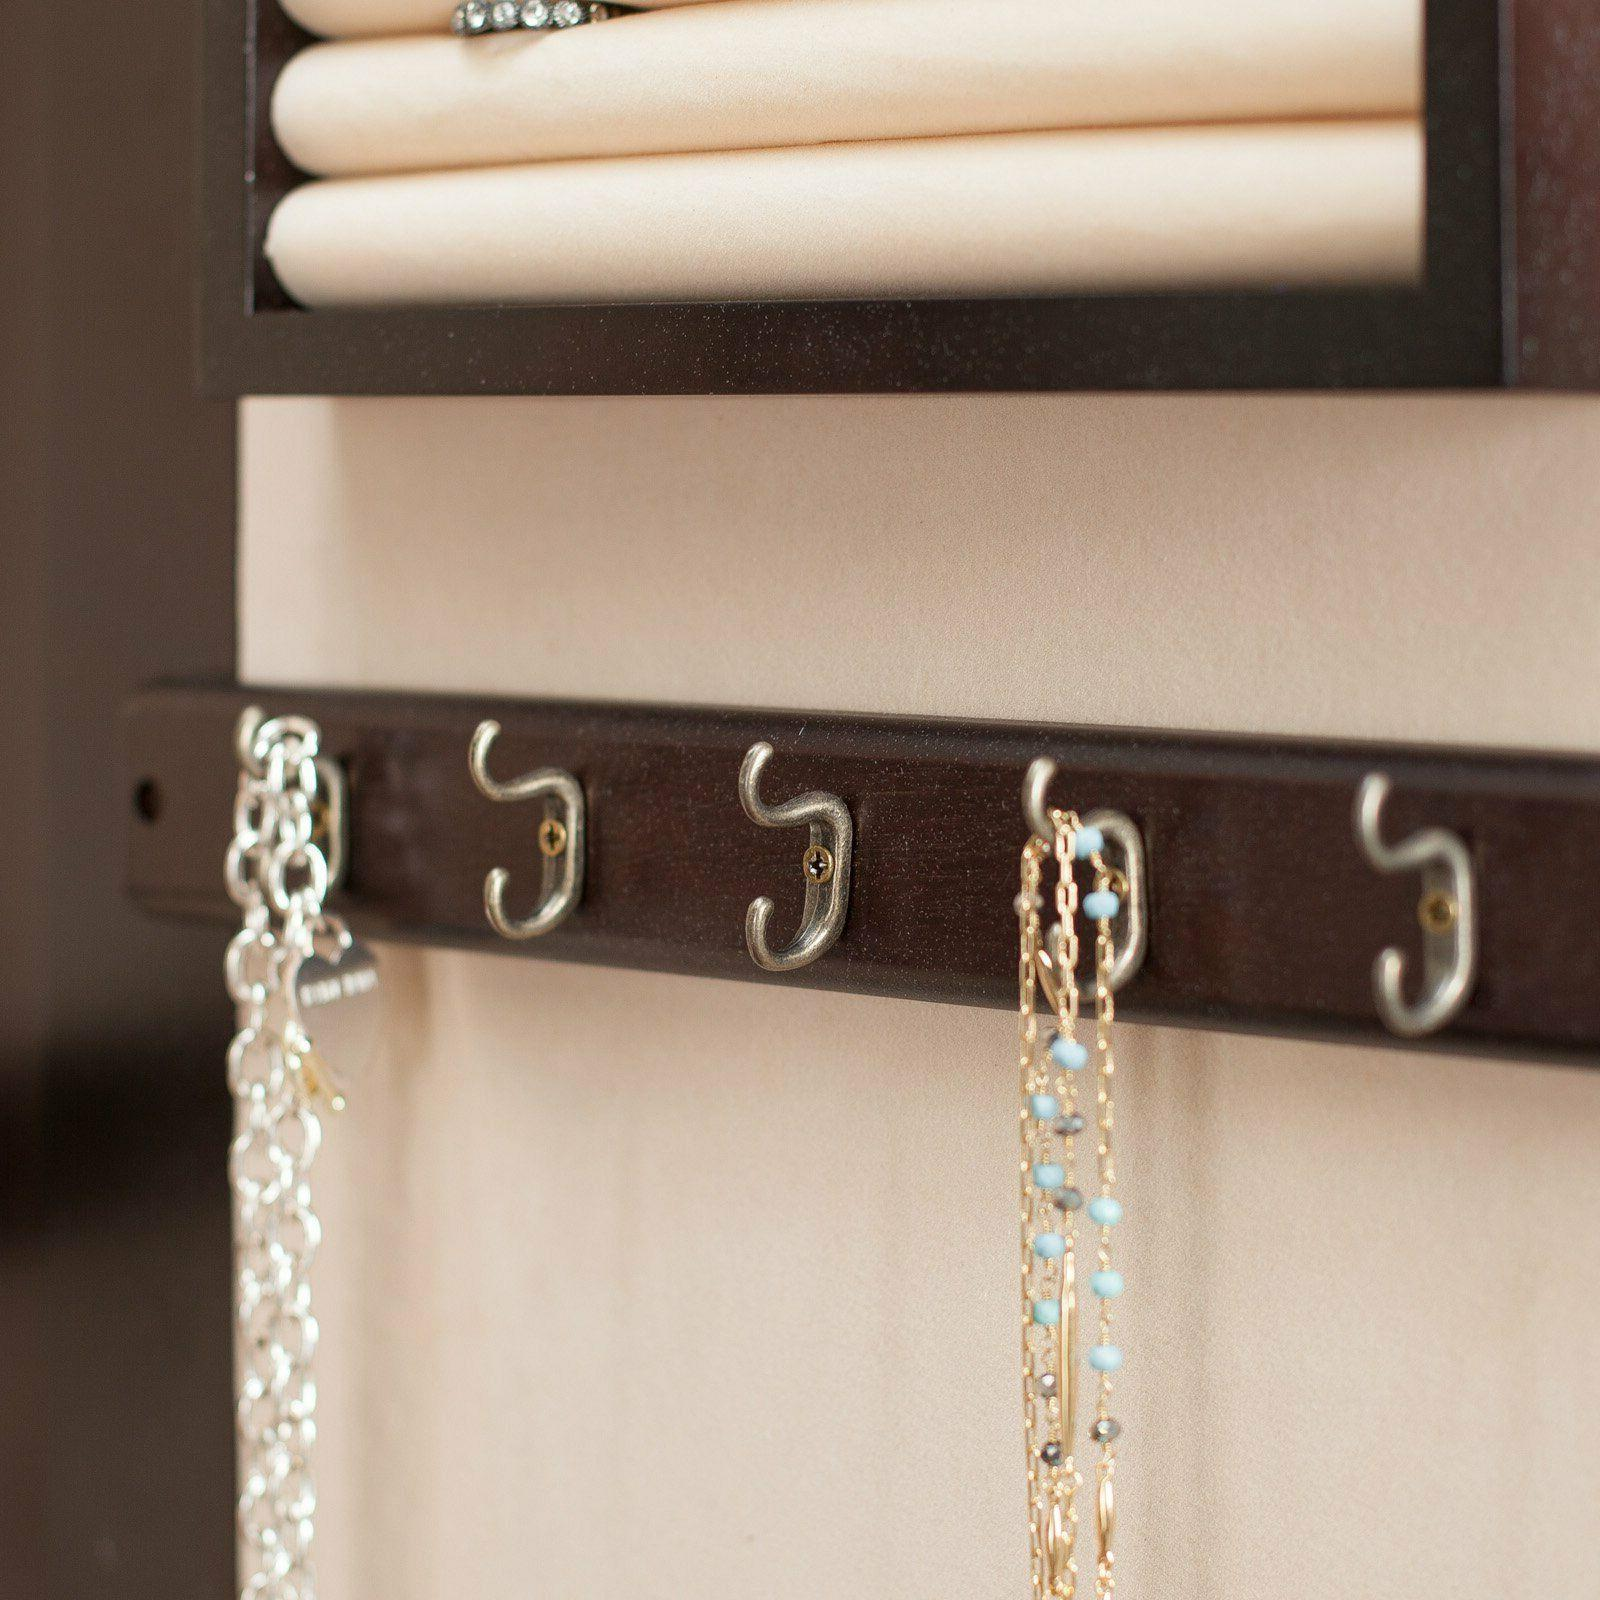 Lighted Mount Jewelry Armoire-